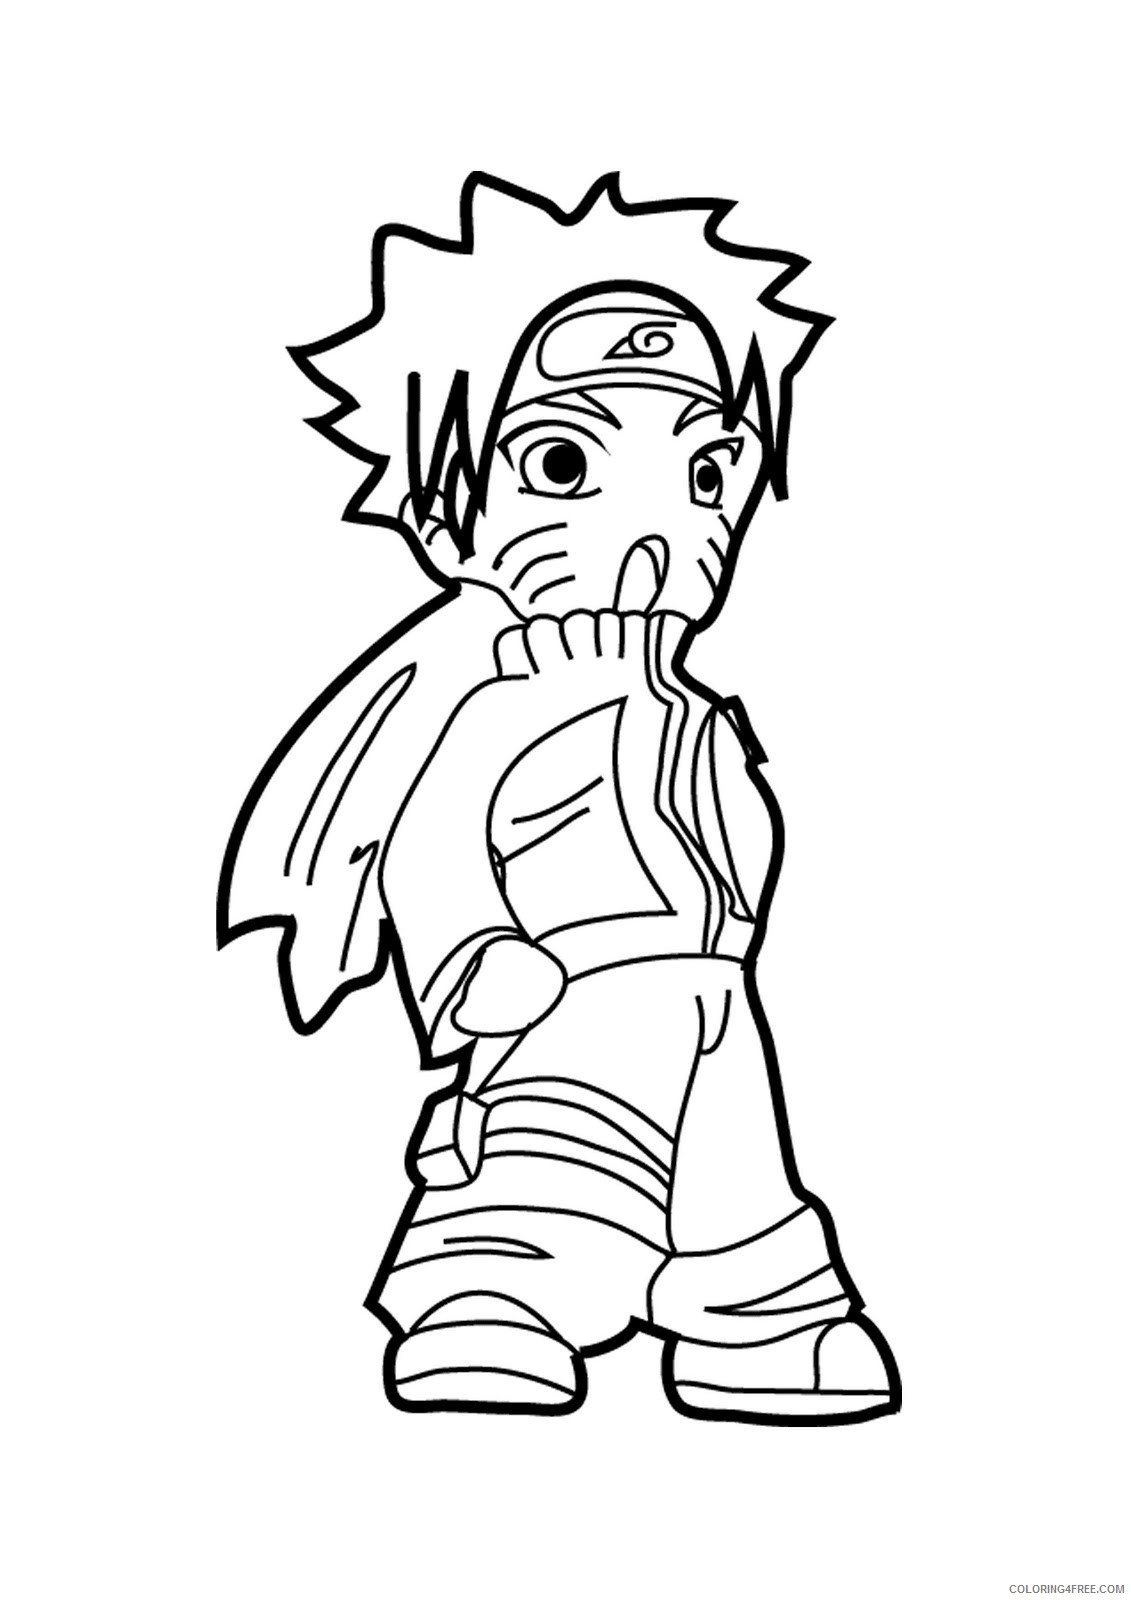 naruto coloring sheets naruto shippuden coloring pages to download and print for free naruto coloring sheets